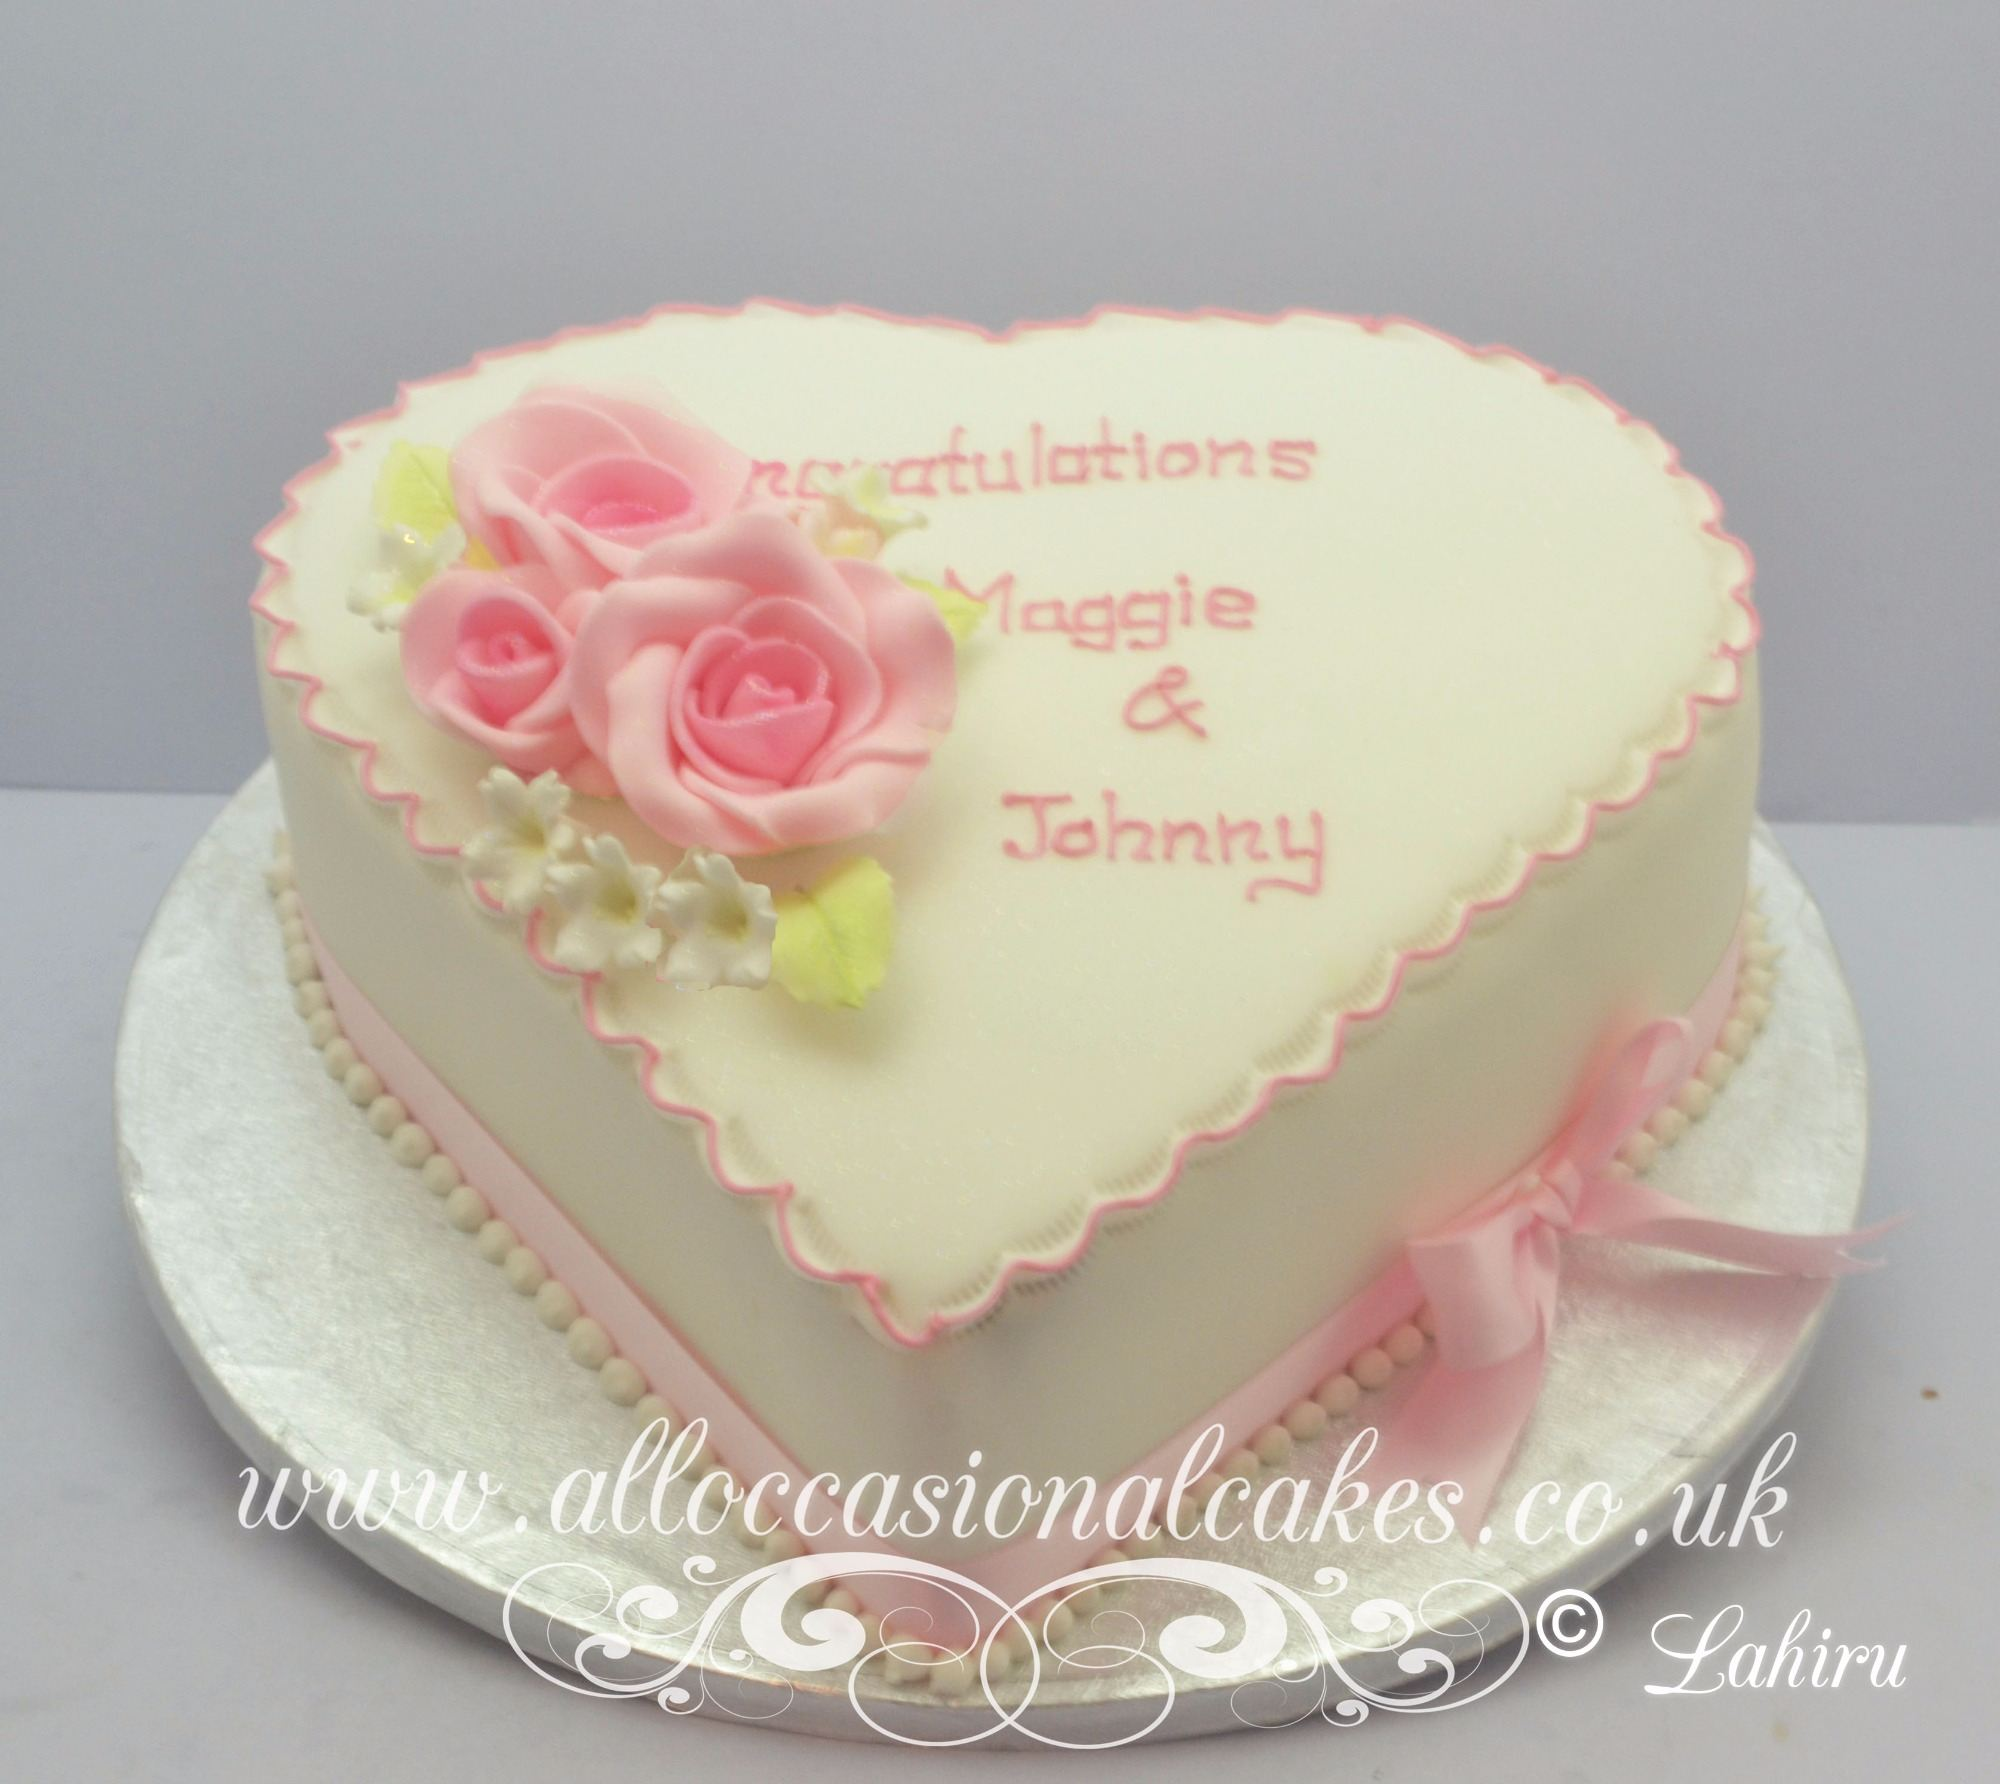 Images Of Heart Shape Cake Designs : Image Gallery heart shaped anniversary cakes